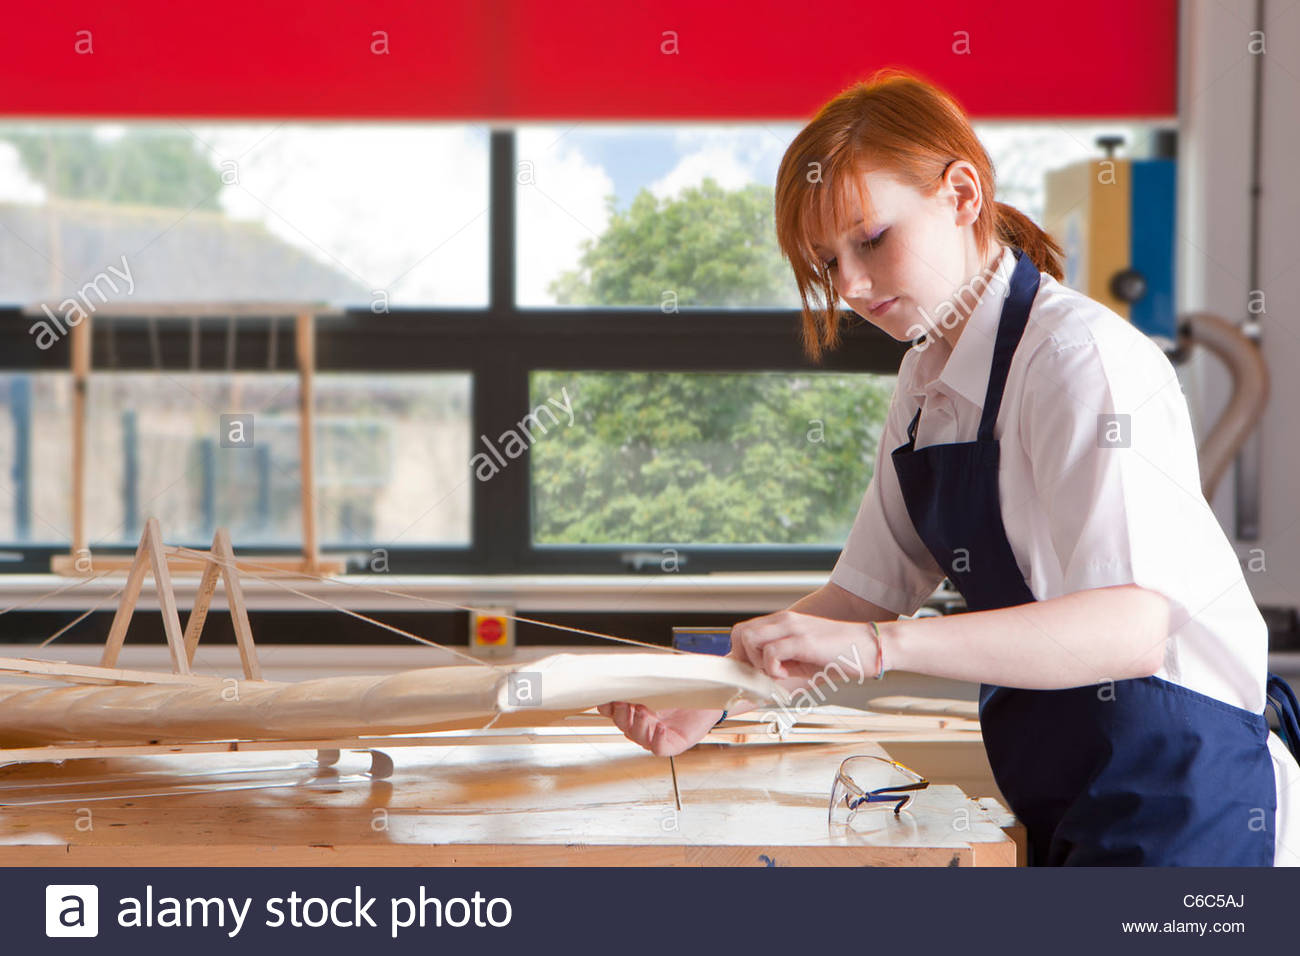 Student in woodworking class working on model airplane - Stock Image